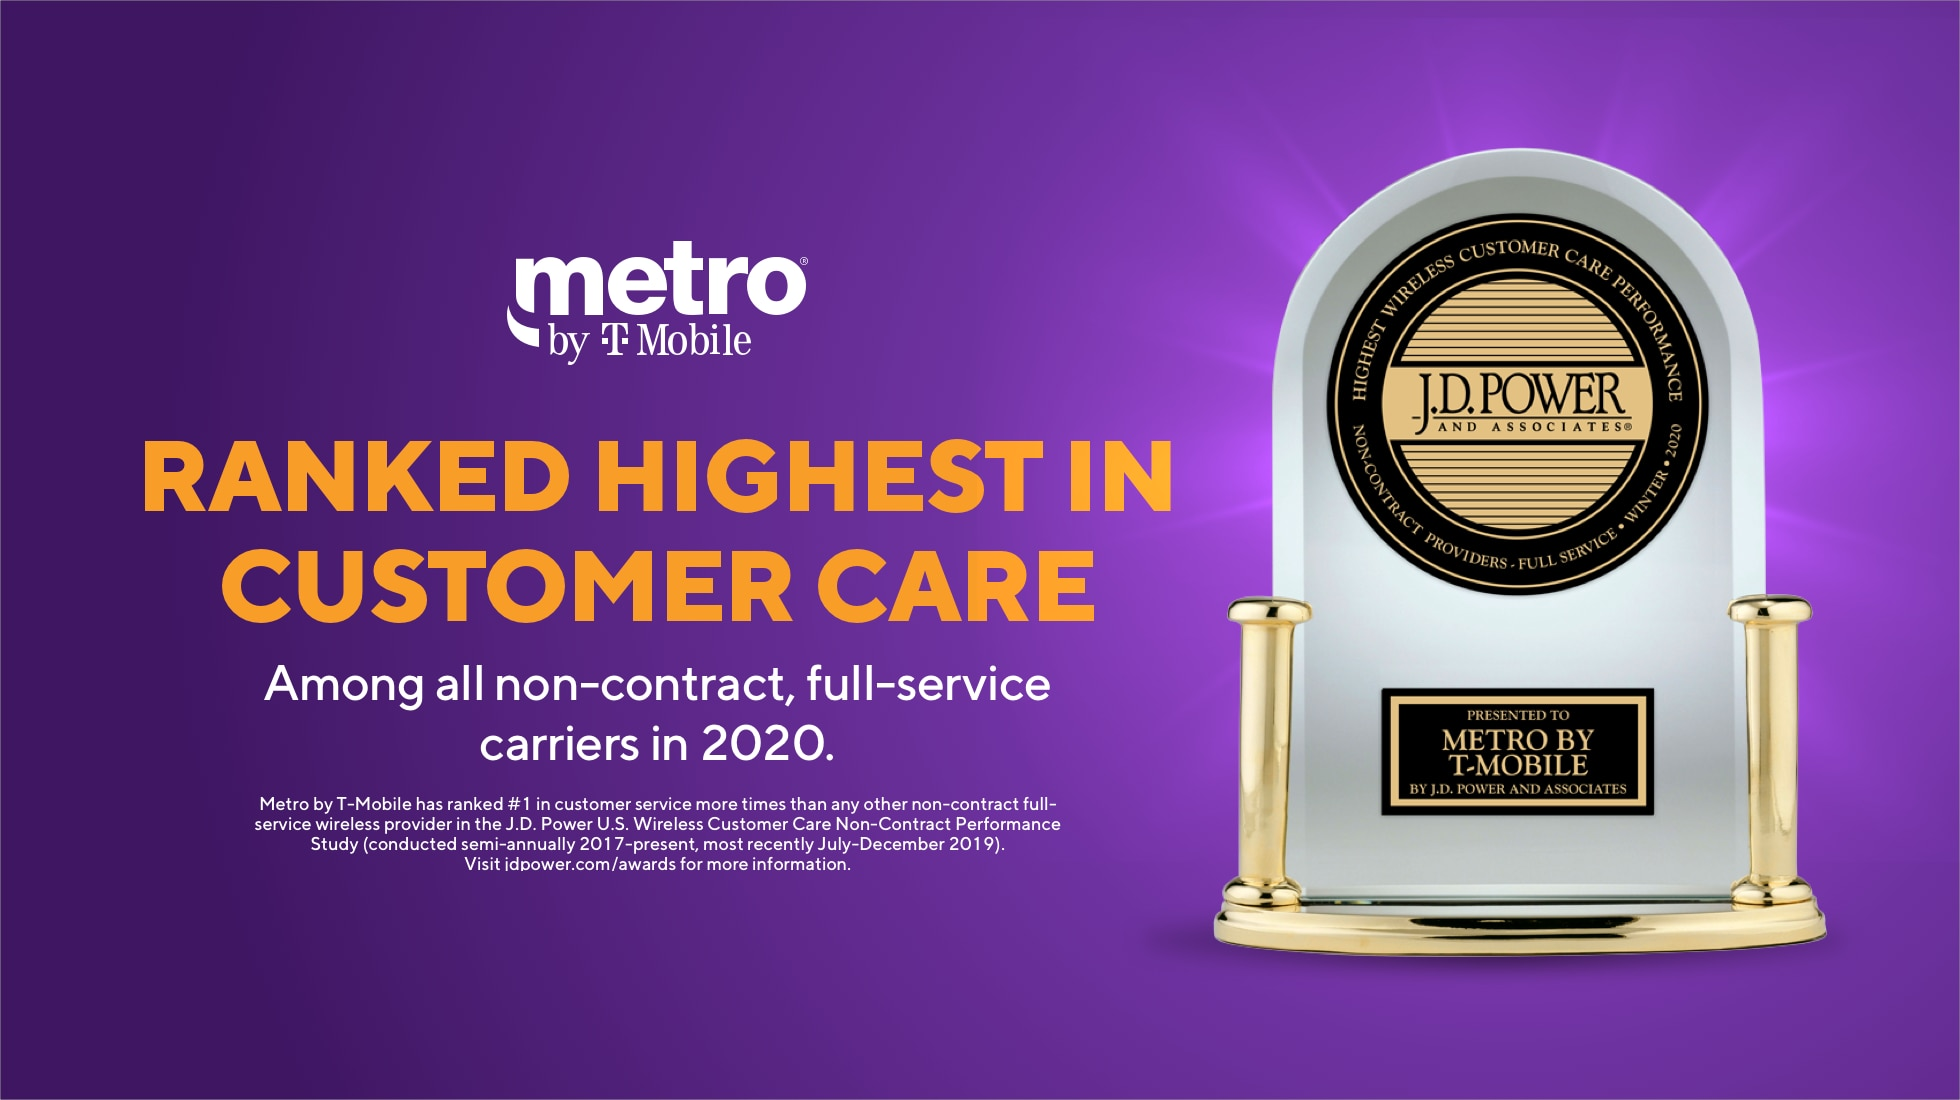 Ranked highest in customer care. Among all non-contract, full-service carriers in 2020. Metro by T-Mobile has ranked #1 in customer service more times than any other non-contract full-service wireless provider in the J.D. Power U.S. Wireless Customer Care Non-Contract Performance Study (conducted semi-annually 2017-present, most recently July-December 2019). Visit jdpower.com/awards for more information.